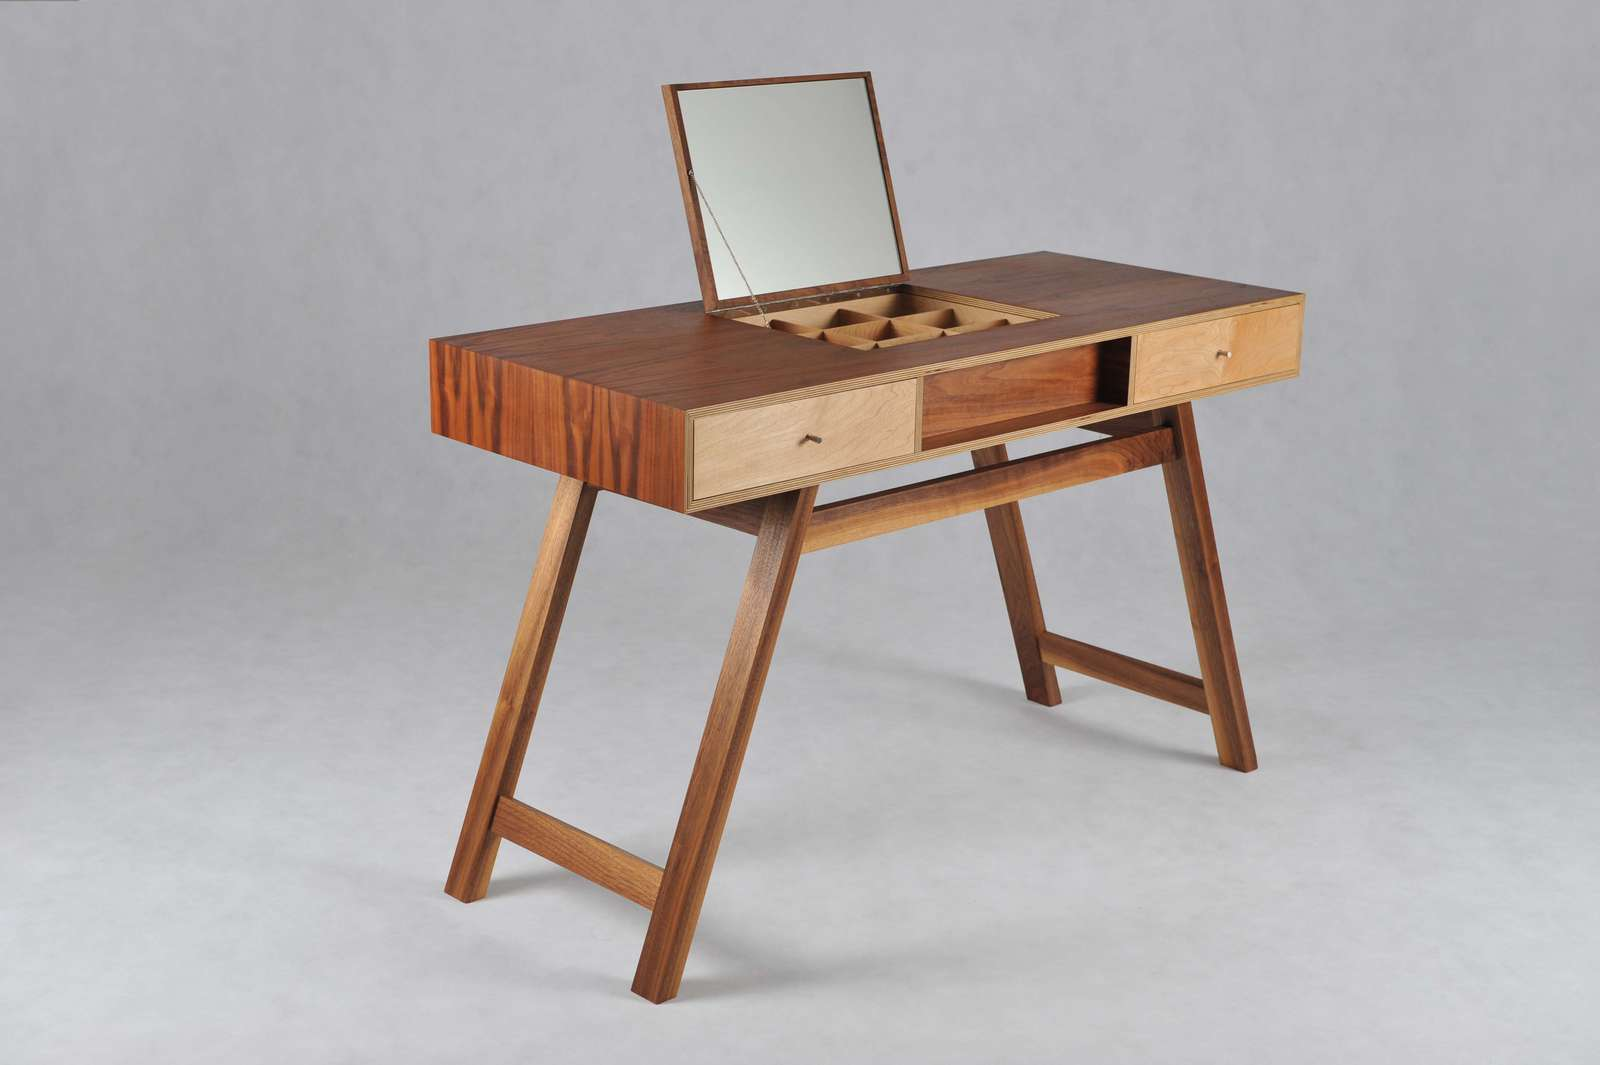 splayed-dressing-table-2 image